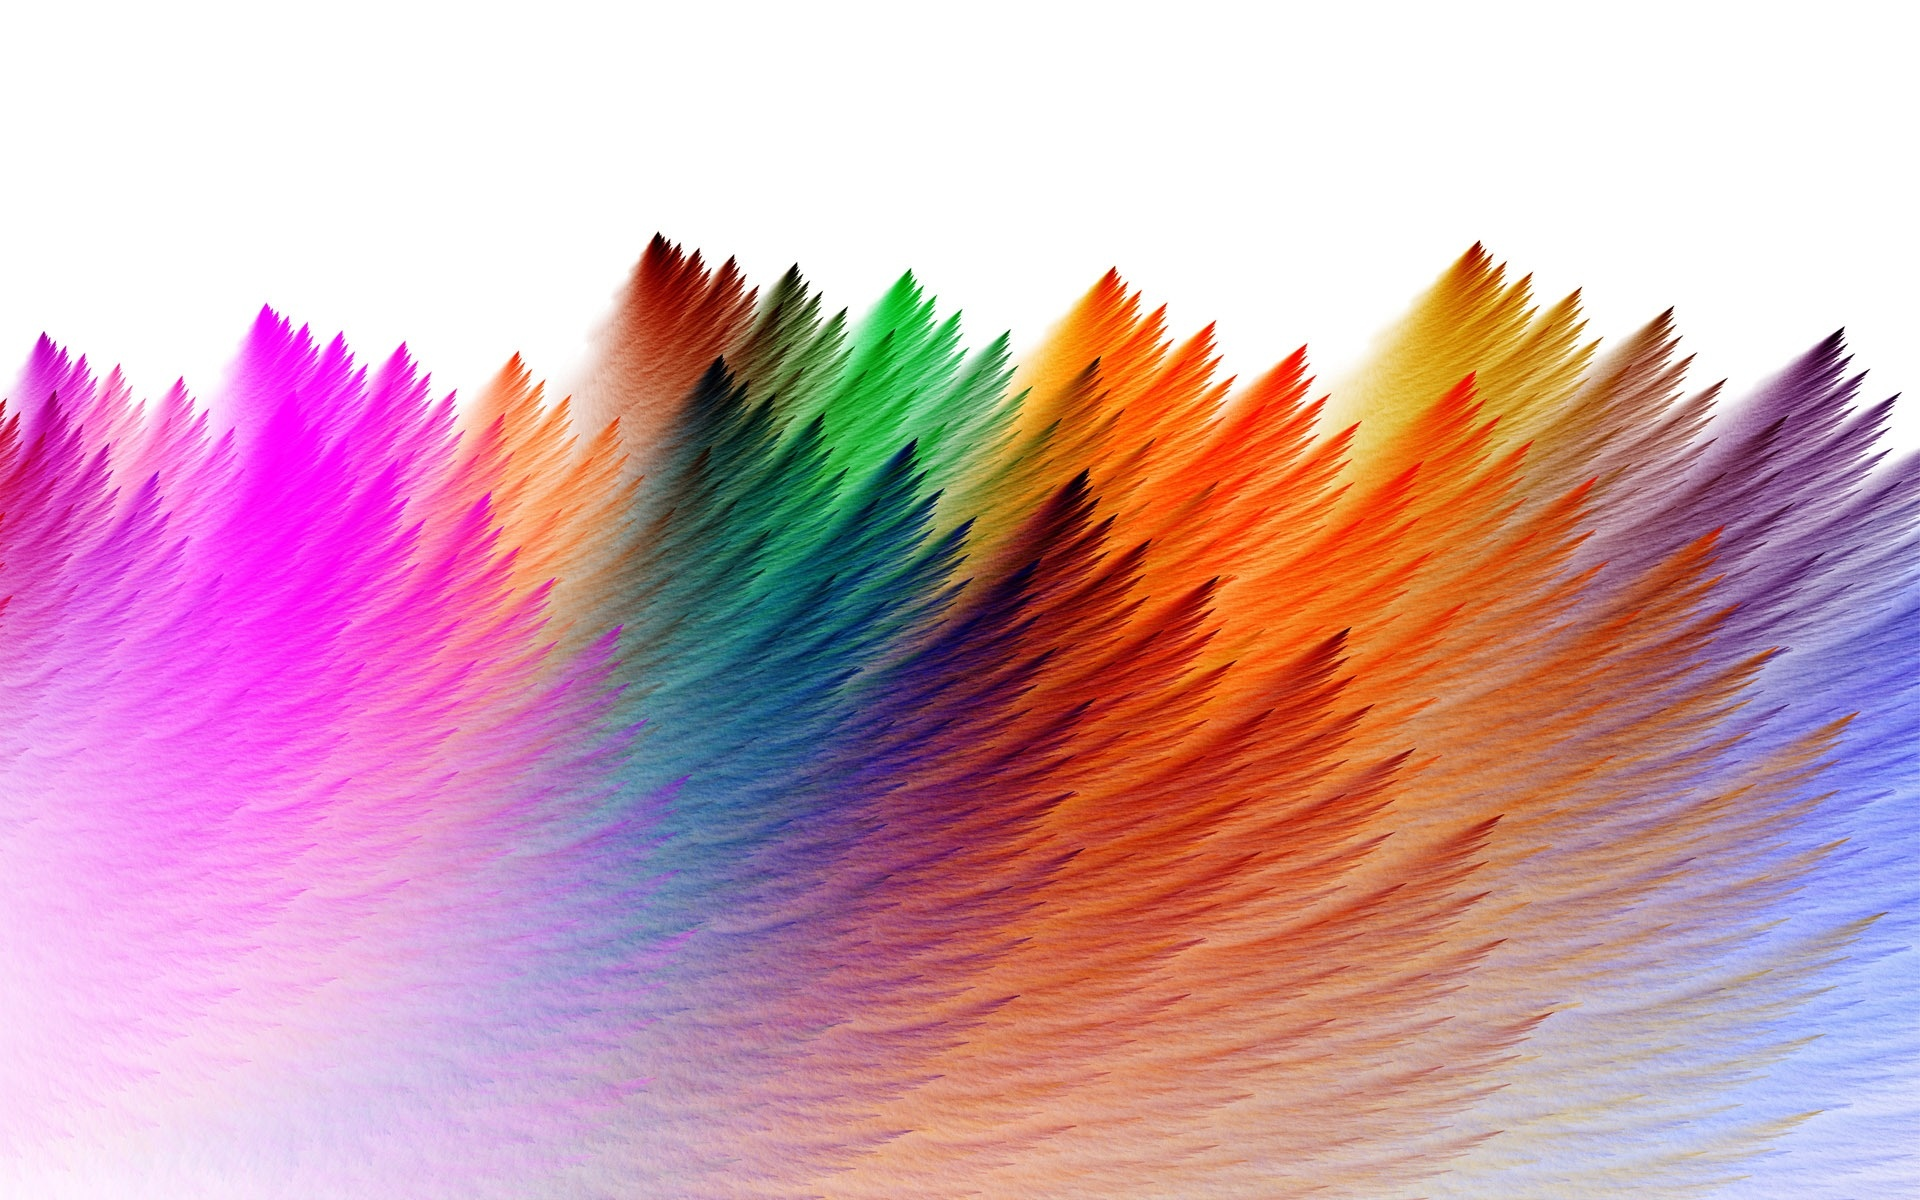 Wallpaper Colorful Abstract Color 1920x1200 Hd Picture Image